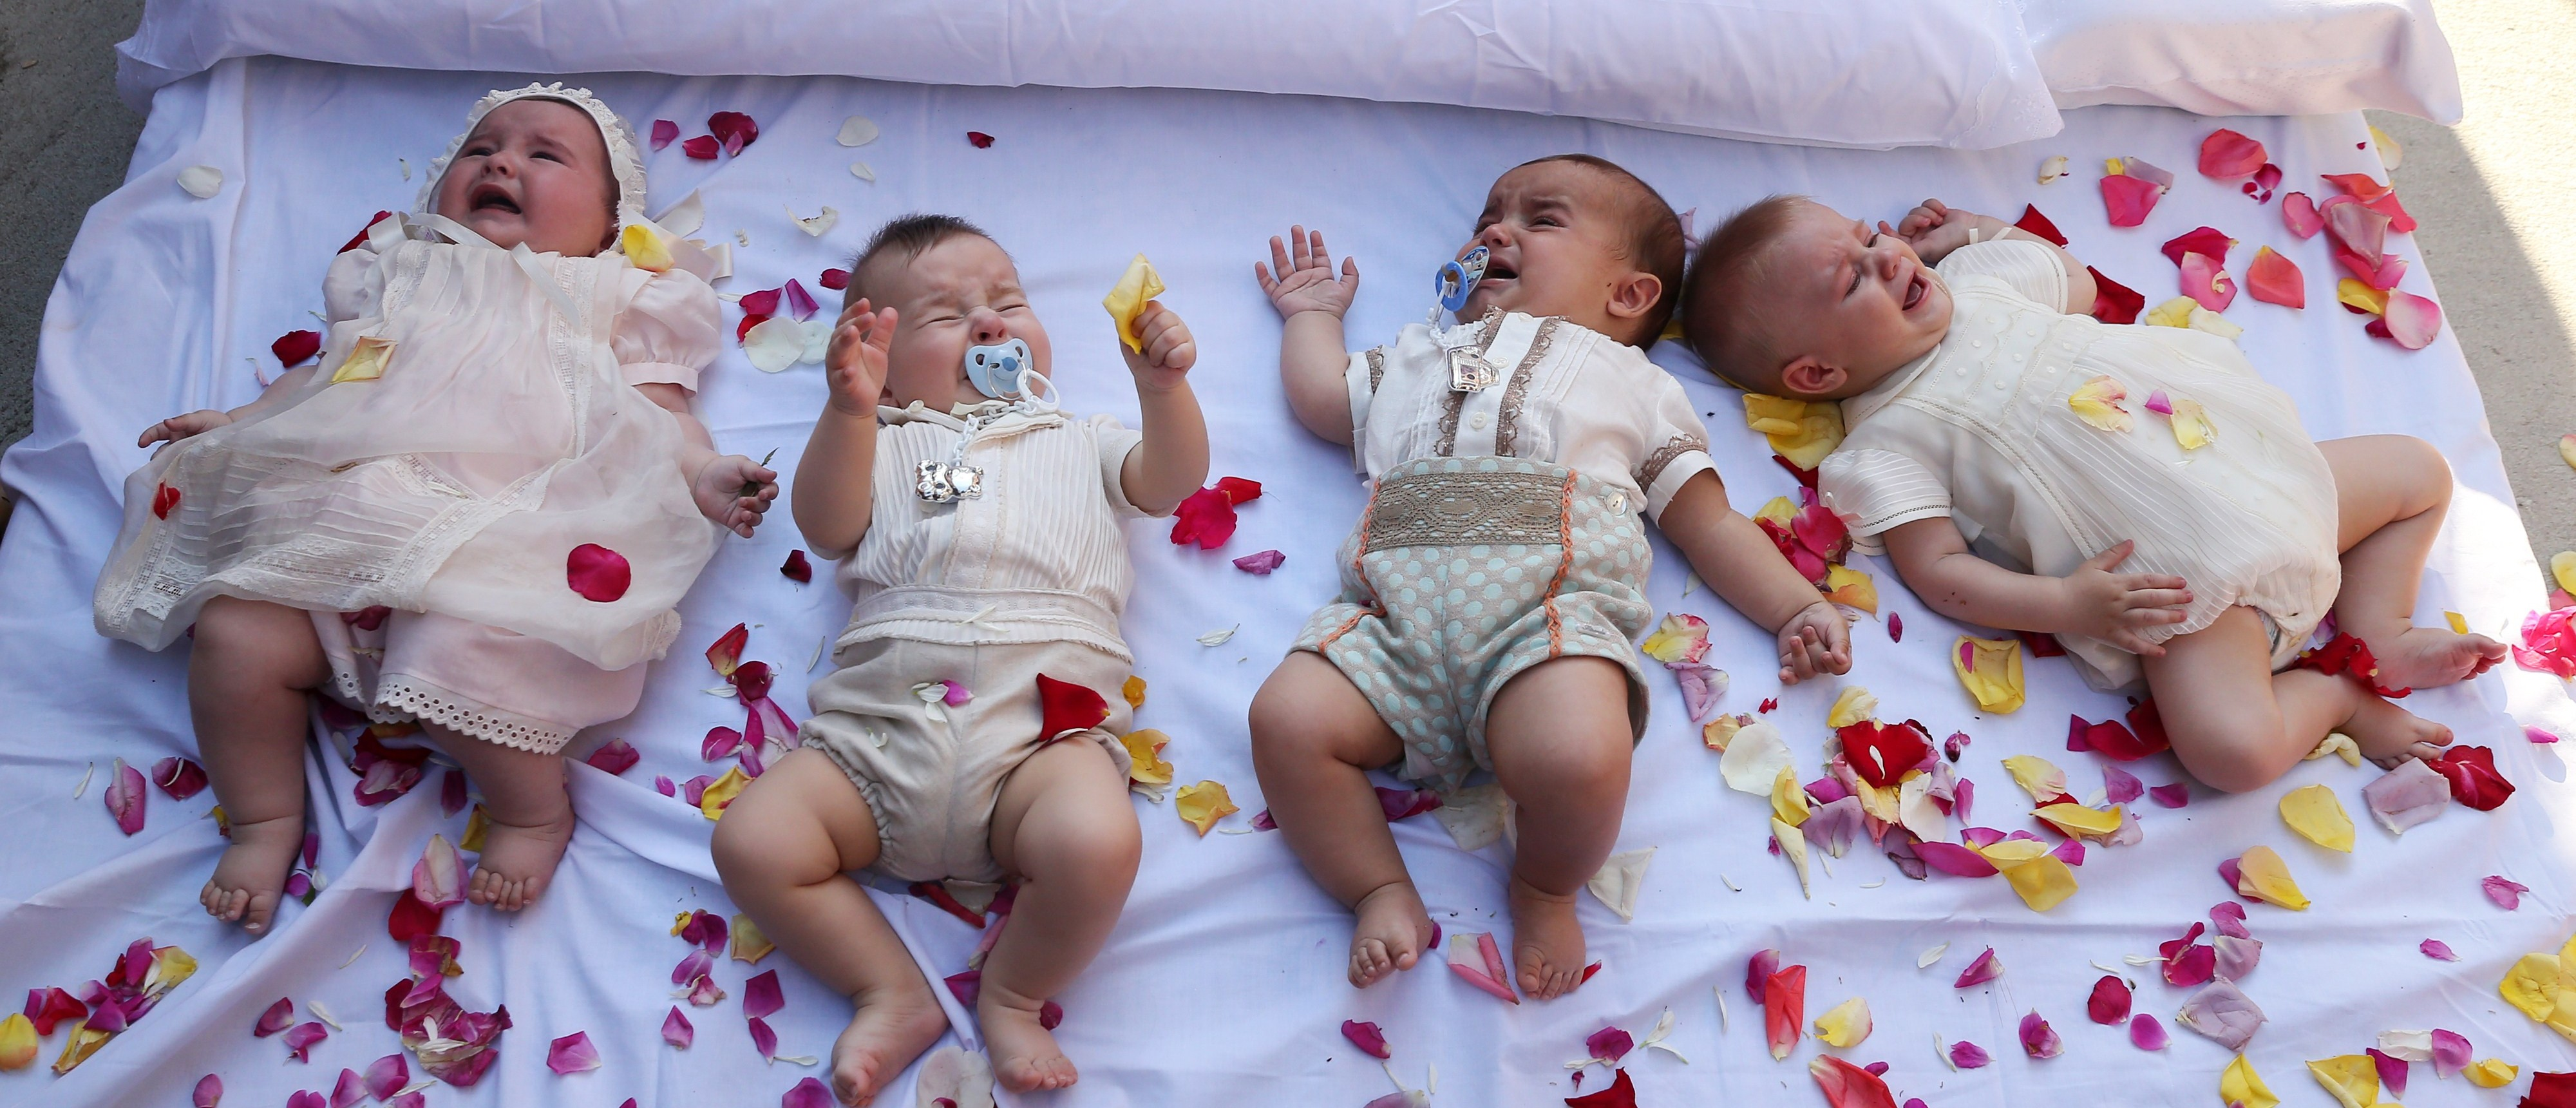 Babies react as they lie on a mattress in a street during 'El Colacho', the 'baby jumping festival' in the village of Castrillo de Murcia, near Burgos on June 7, 2015. Baby jumping (El Colacho) is a traditional Spanish practice dating back to 1620 that takes place annually to celebrate the Catholic feast of Corpus Christi. During the act - known as El Salto del Colacho (the devil's jump) or simply El Colacho - men dressed as the Devil jump over babies born in the last twelve months of the year who lie on mattresses in the street. CESAR MANSO/AFP/Getty Images)